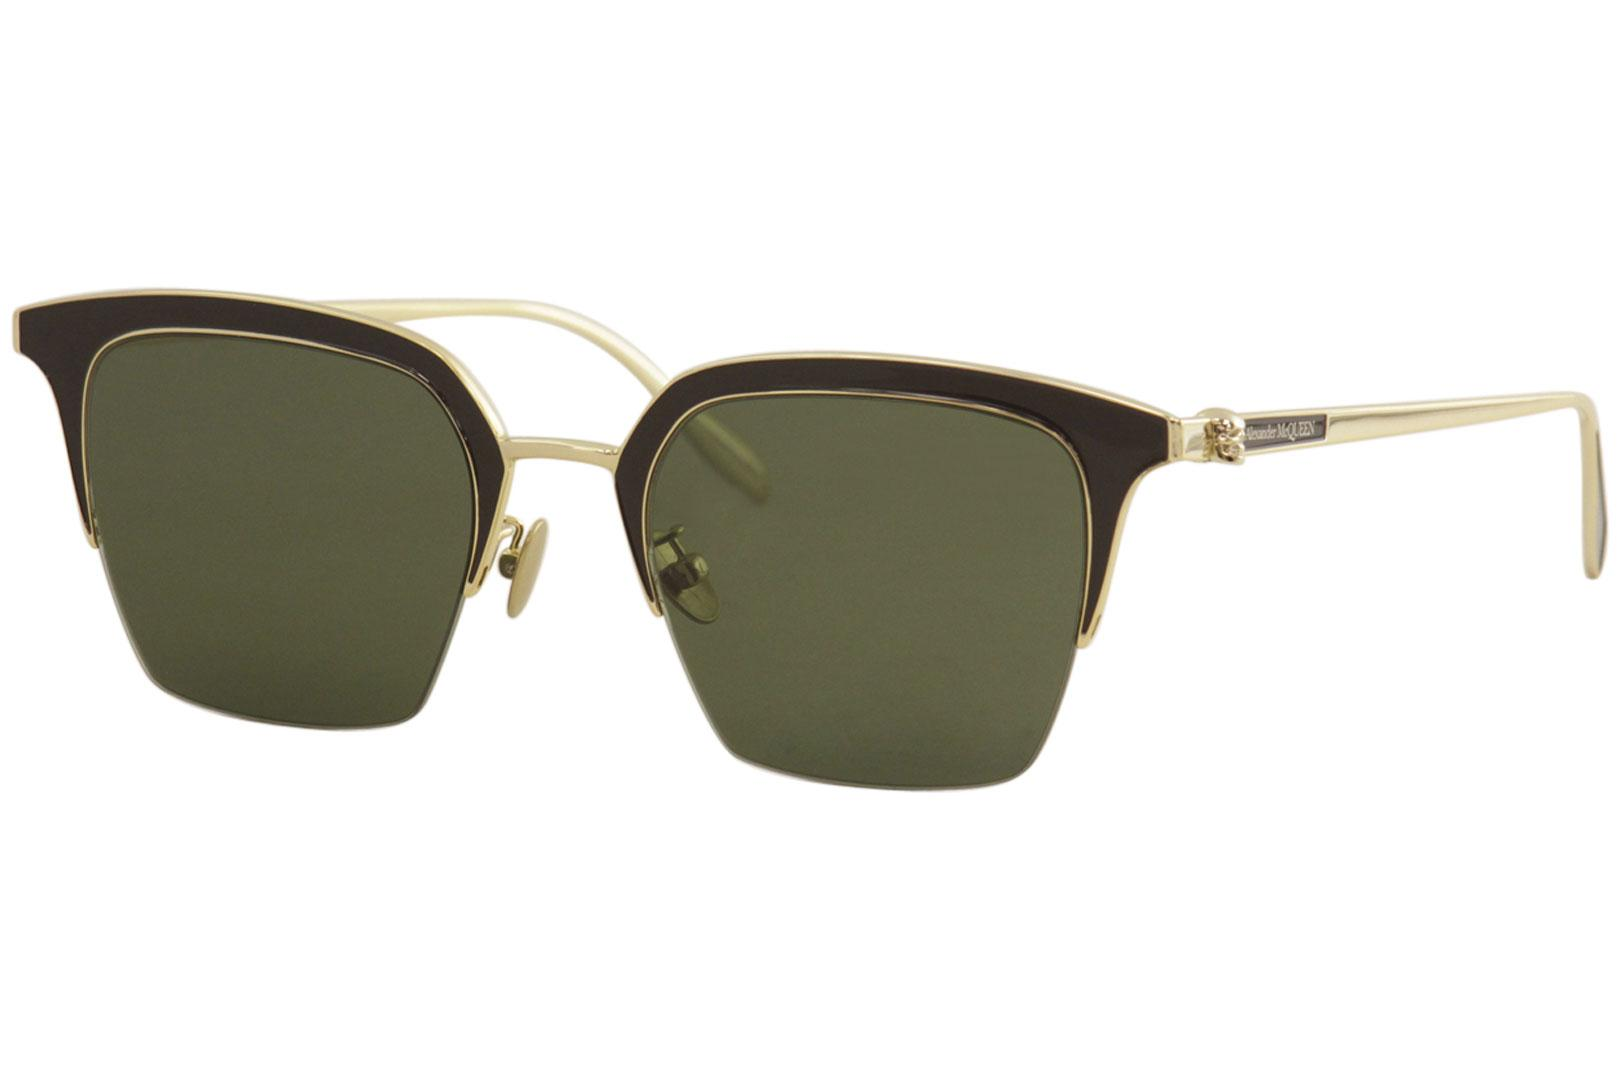 Image of - Gold Brown/Green   002 - Lens 54 Bridge 22 Temple 150mm (Asian Fit)